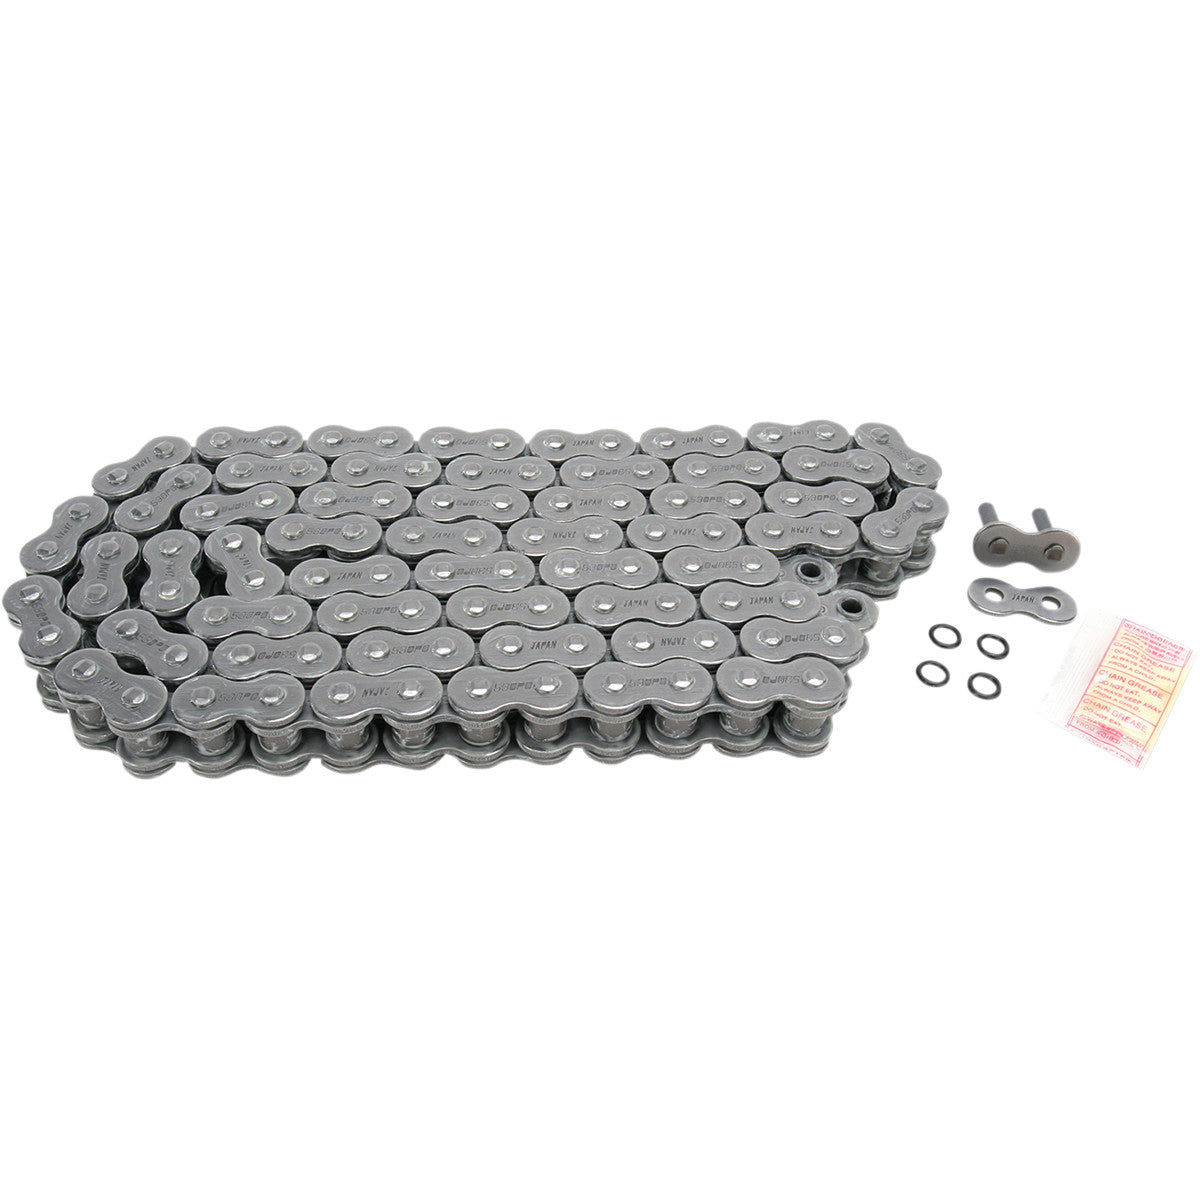 PARTS UNLIMITED-CHAIN CHAIN PU 530 X-RNG X 100L